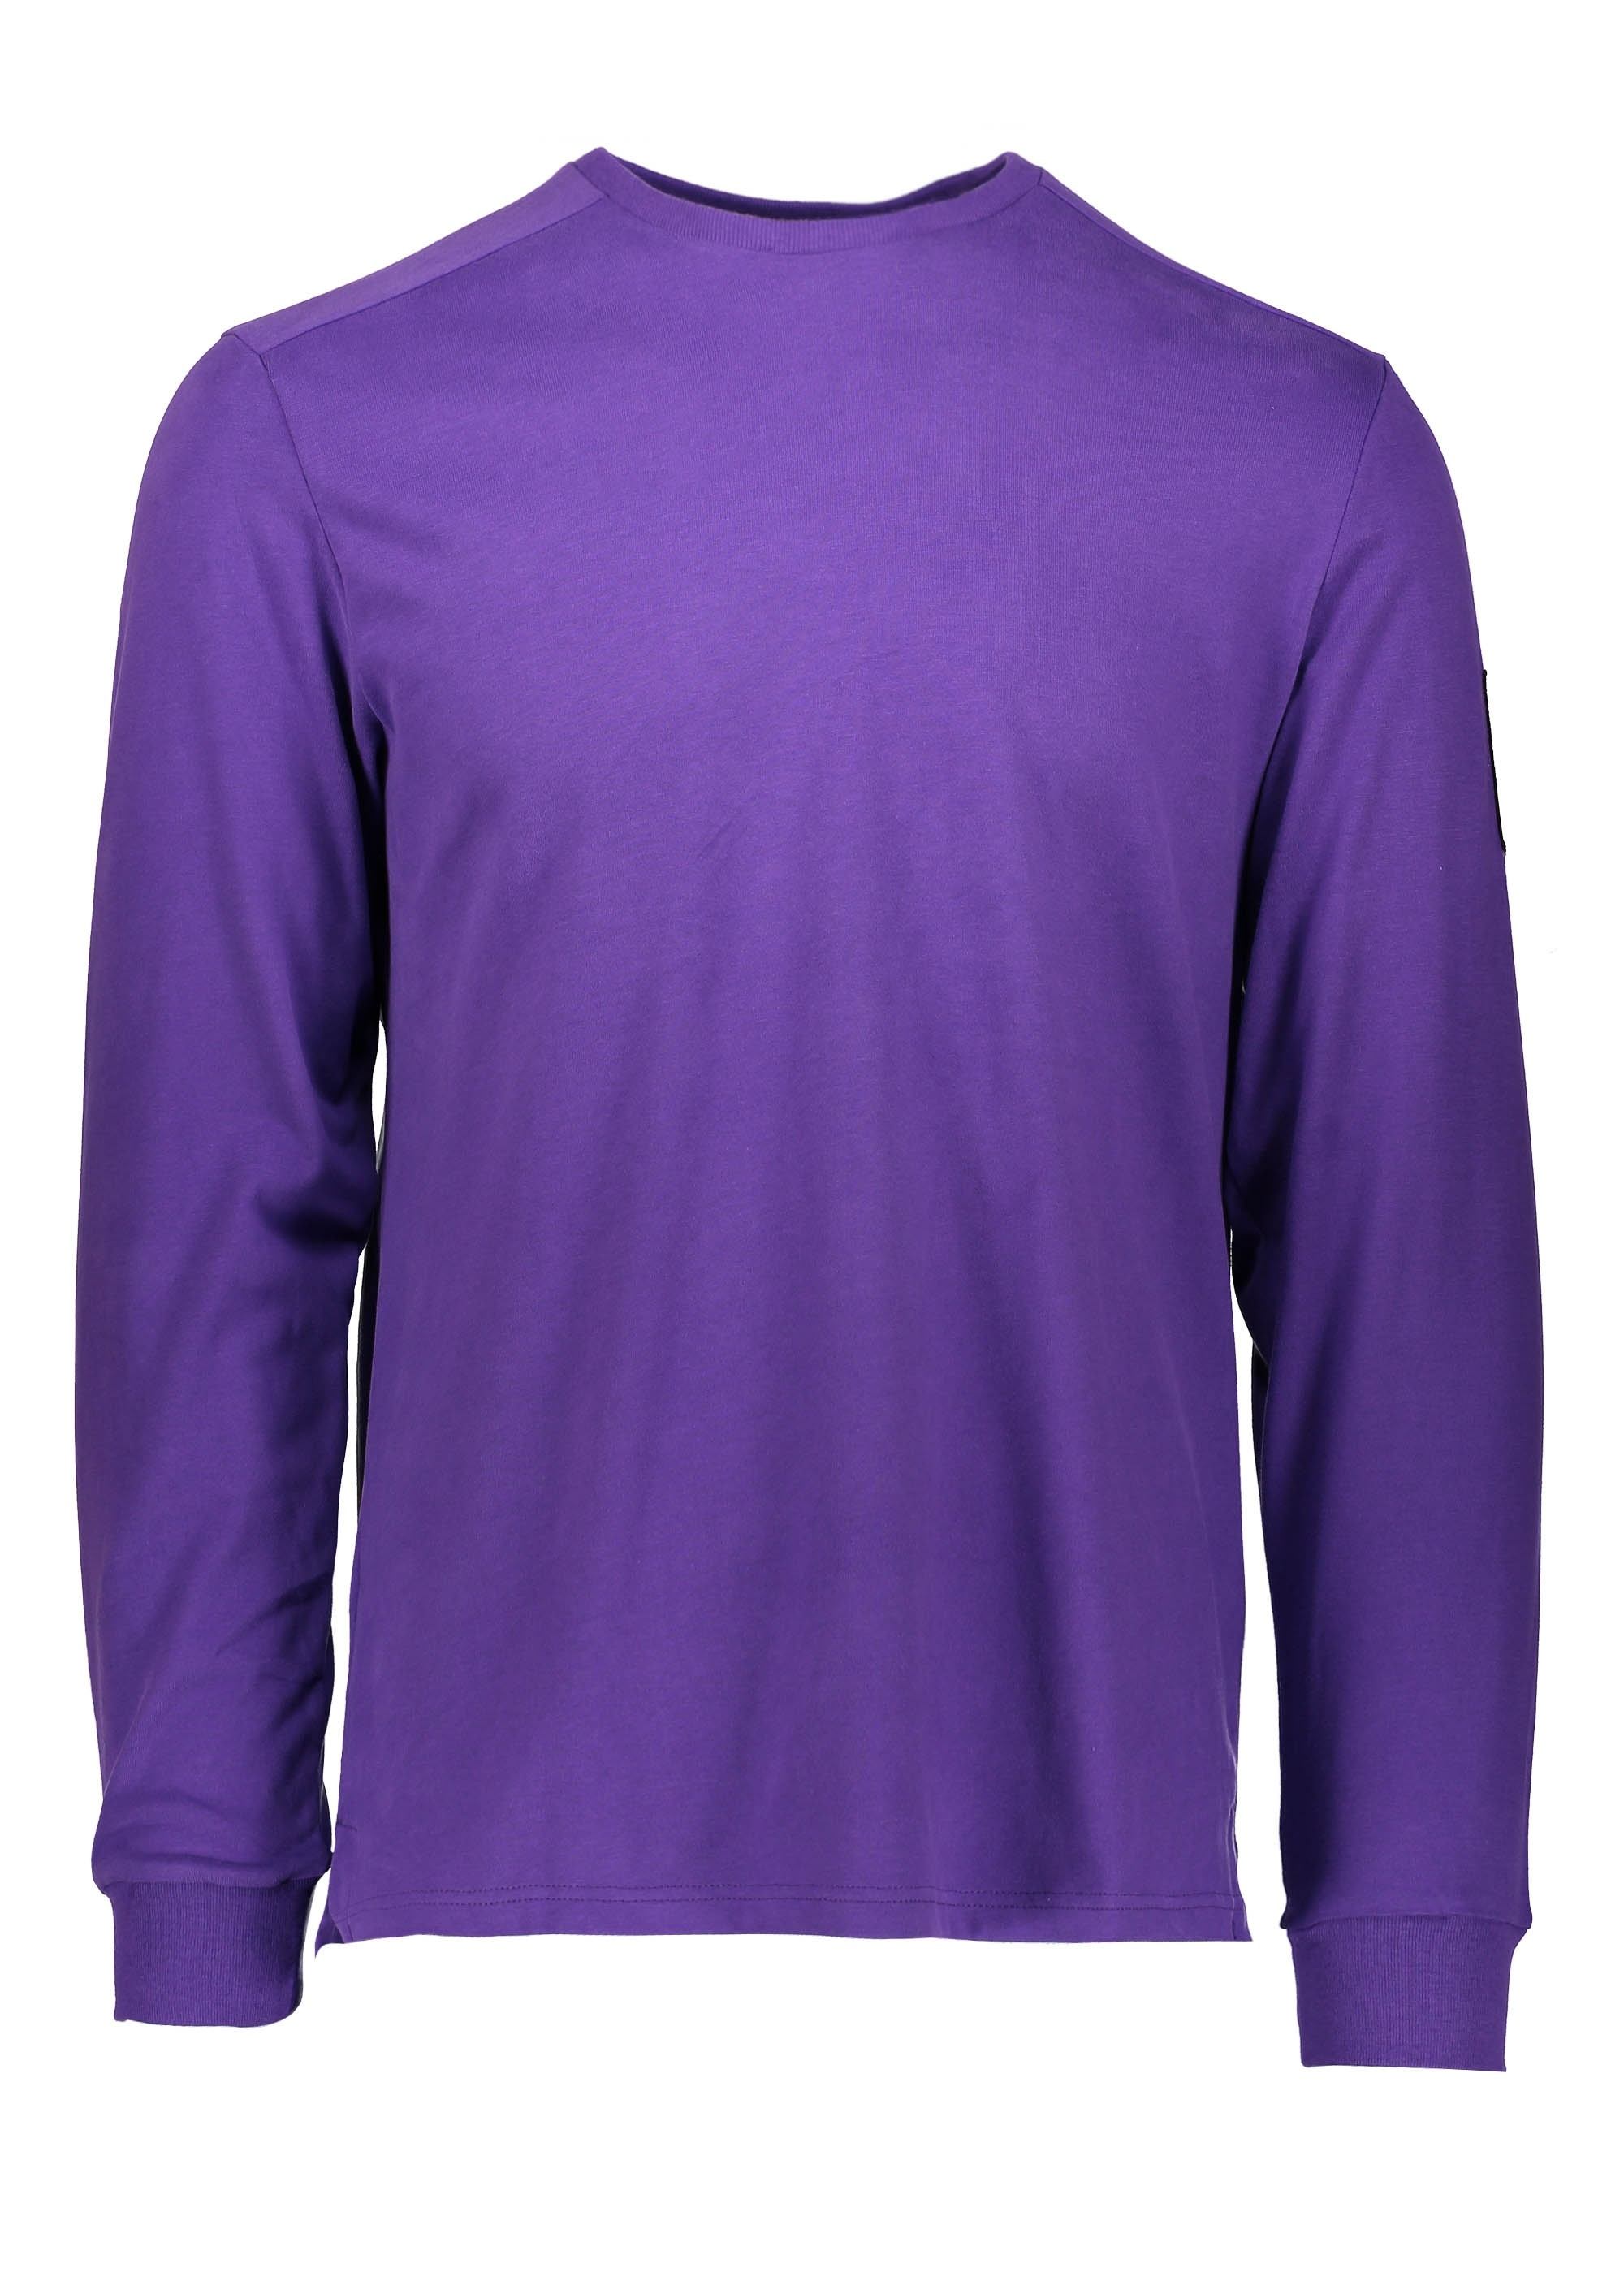 bfd2376c5 The North Face LS Fine 2 Tee - Purple